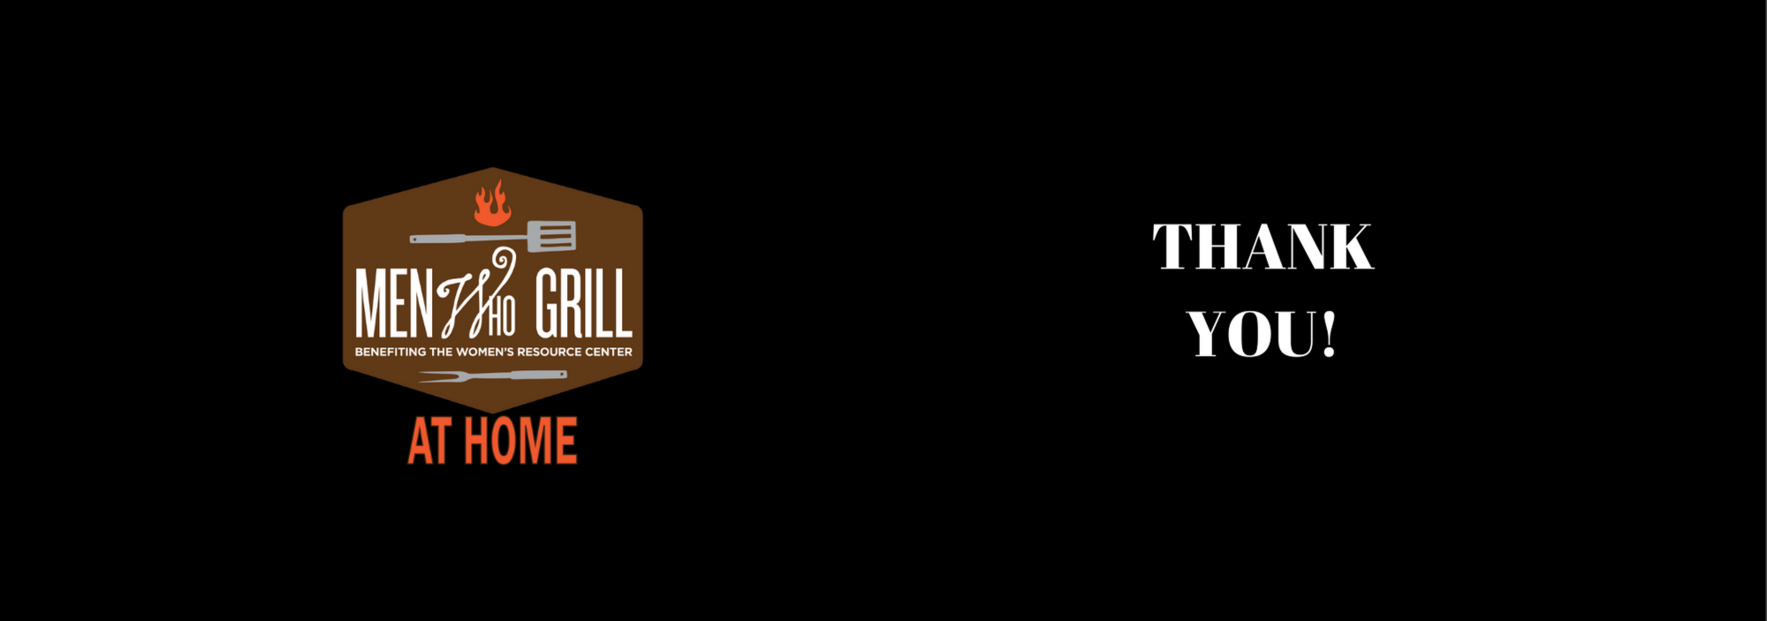 Men Who Grill AT HOME!  Be part of the 1st virtual grilling event in Durango! image